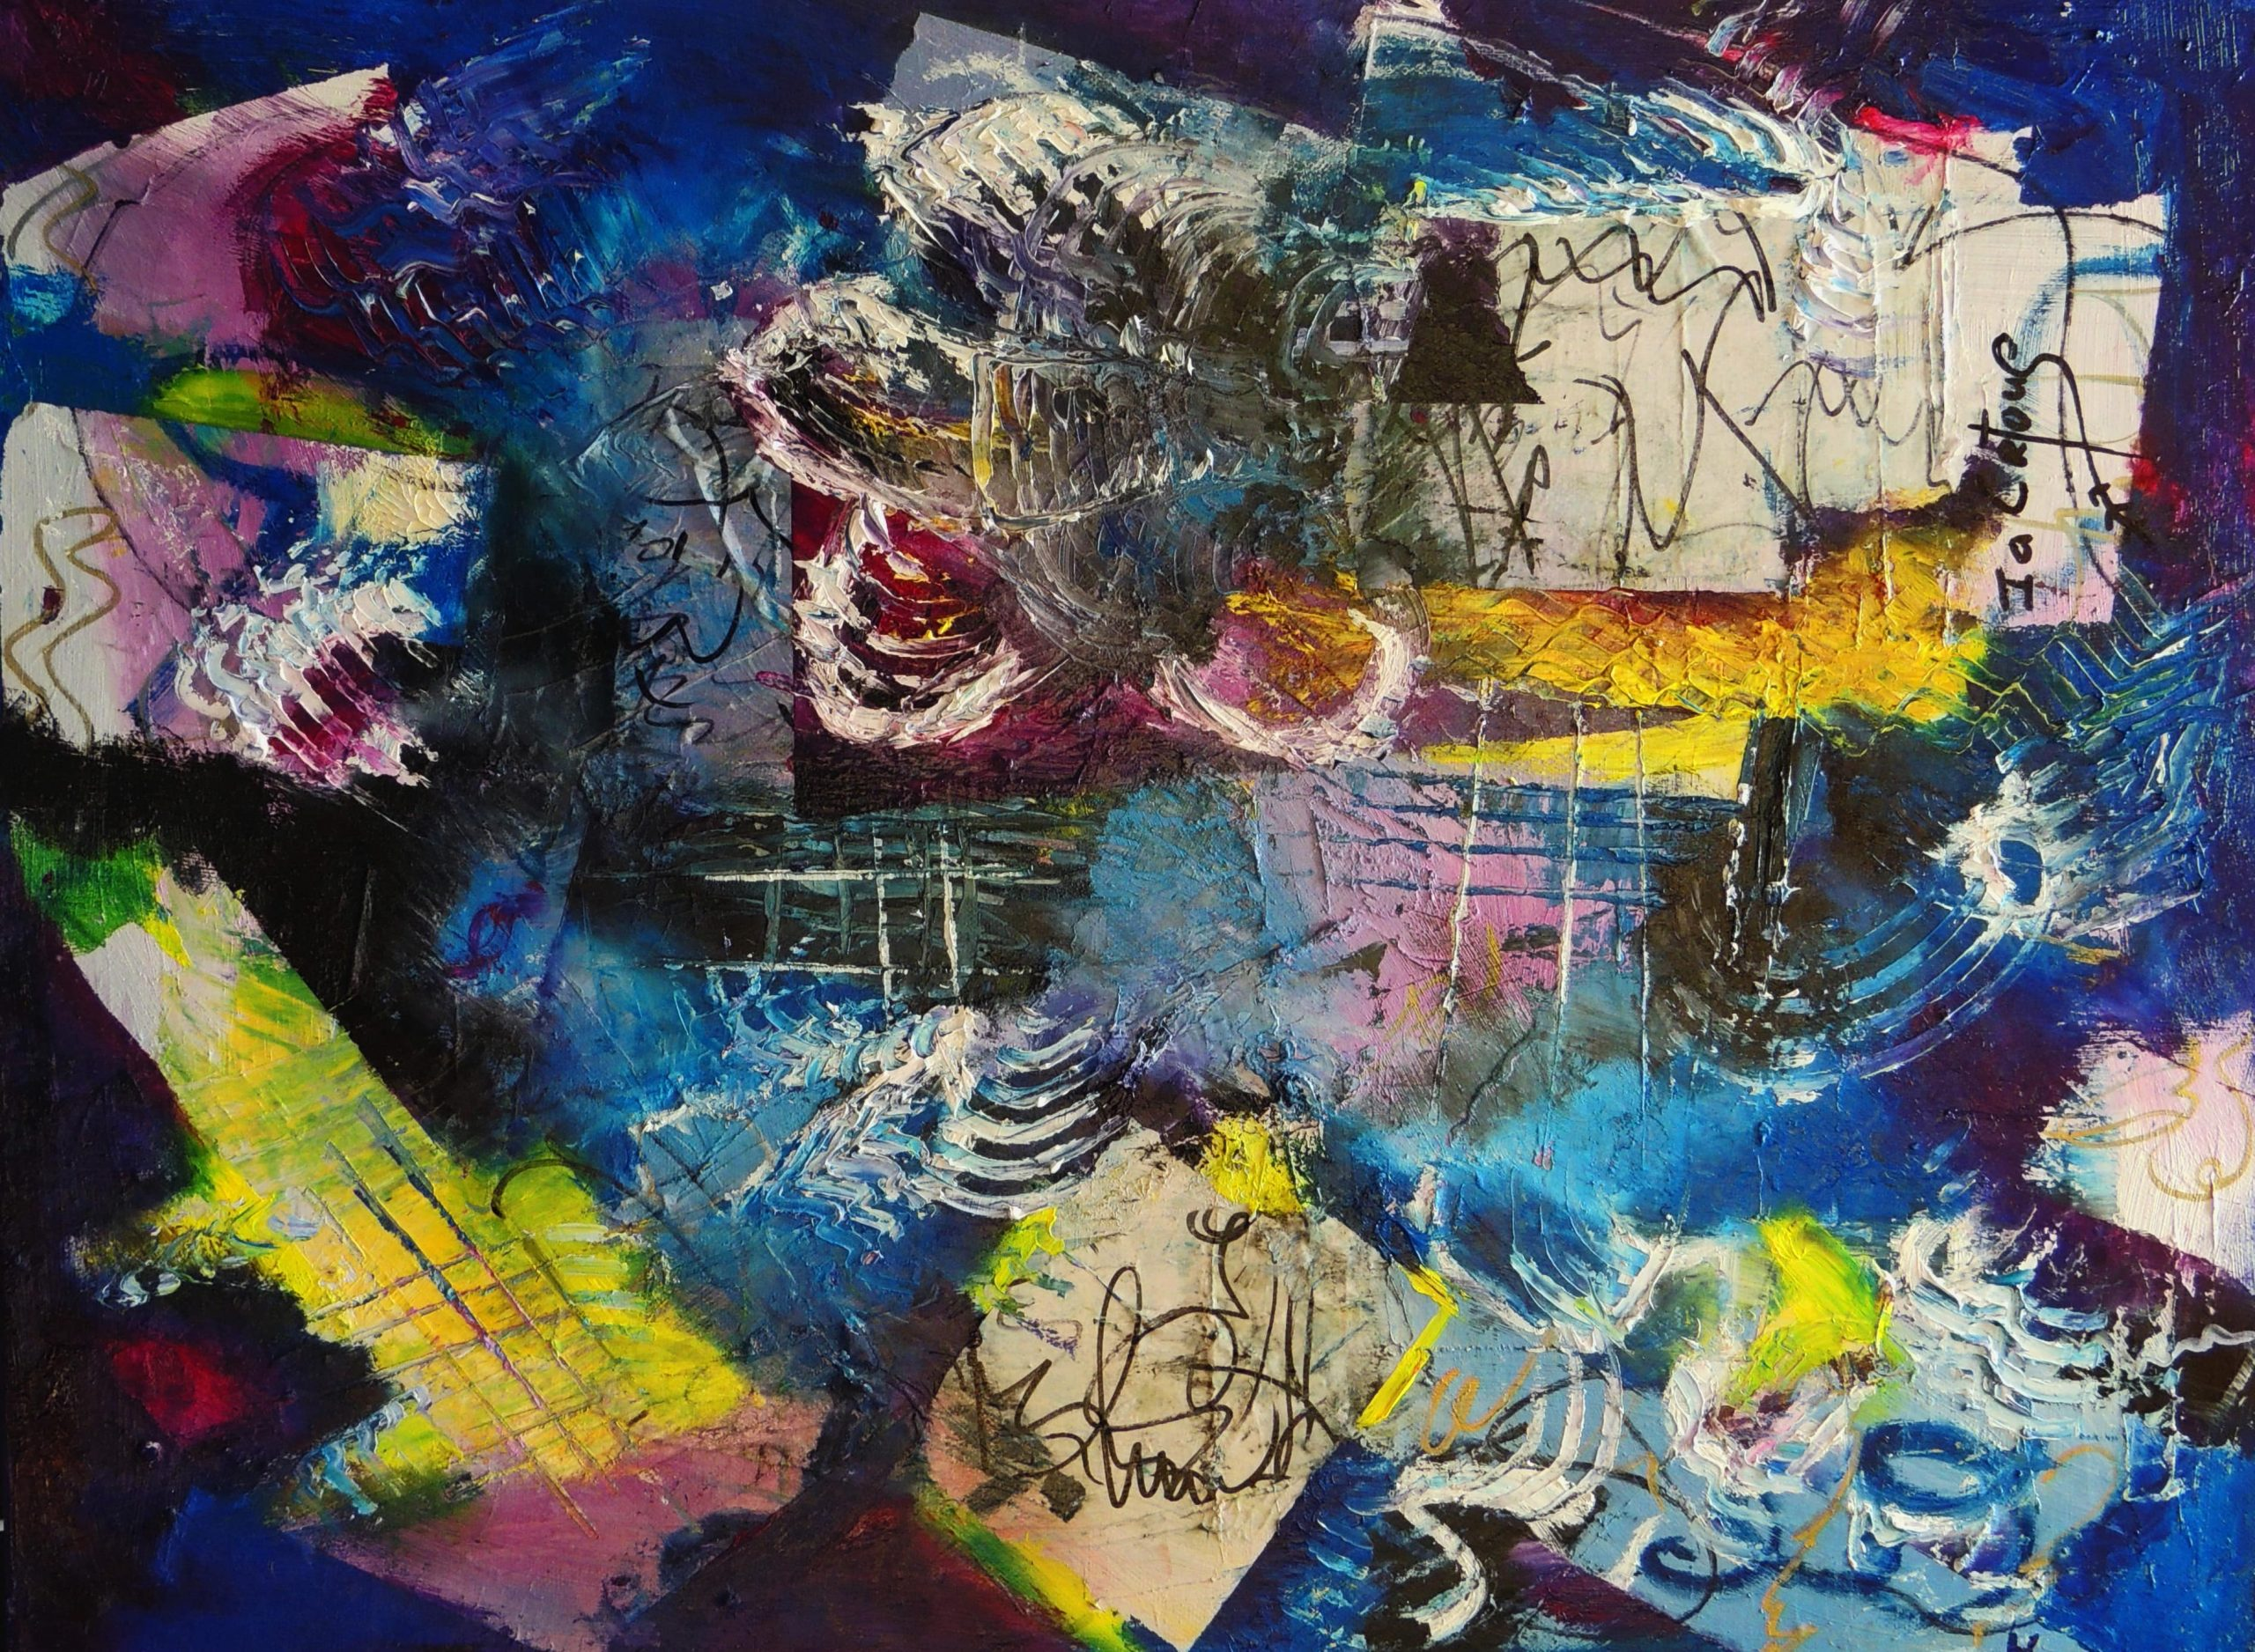 4514 Written-Tissue paper collages on canvas-Mark making, textures, lines, and shapes against dark background-For sale